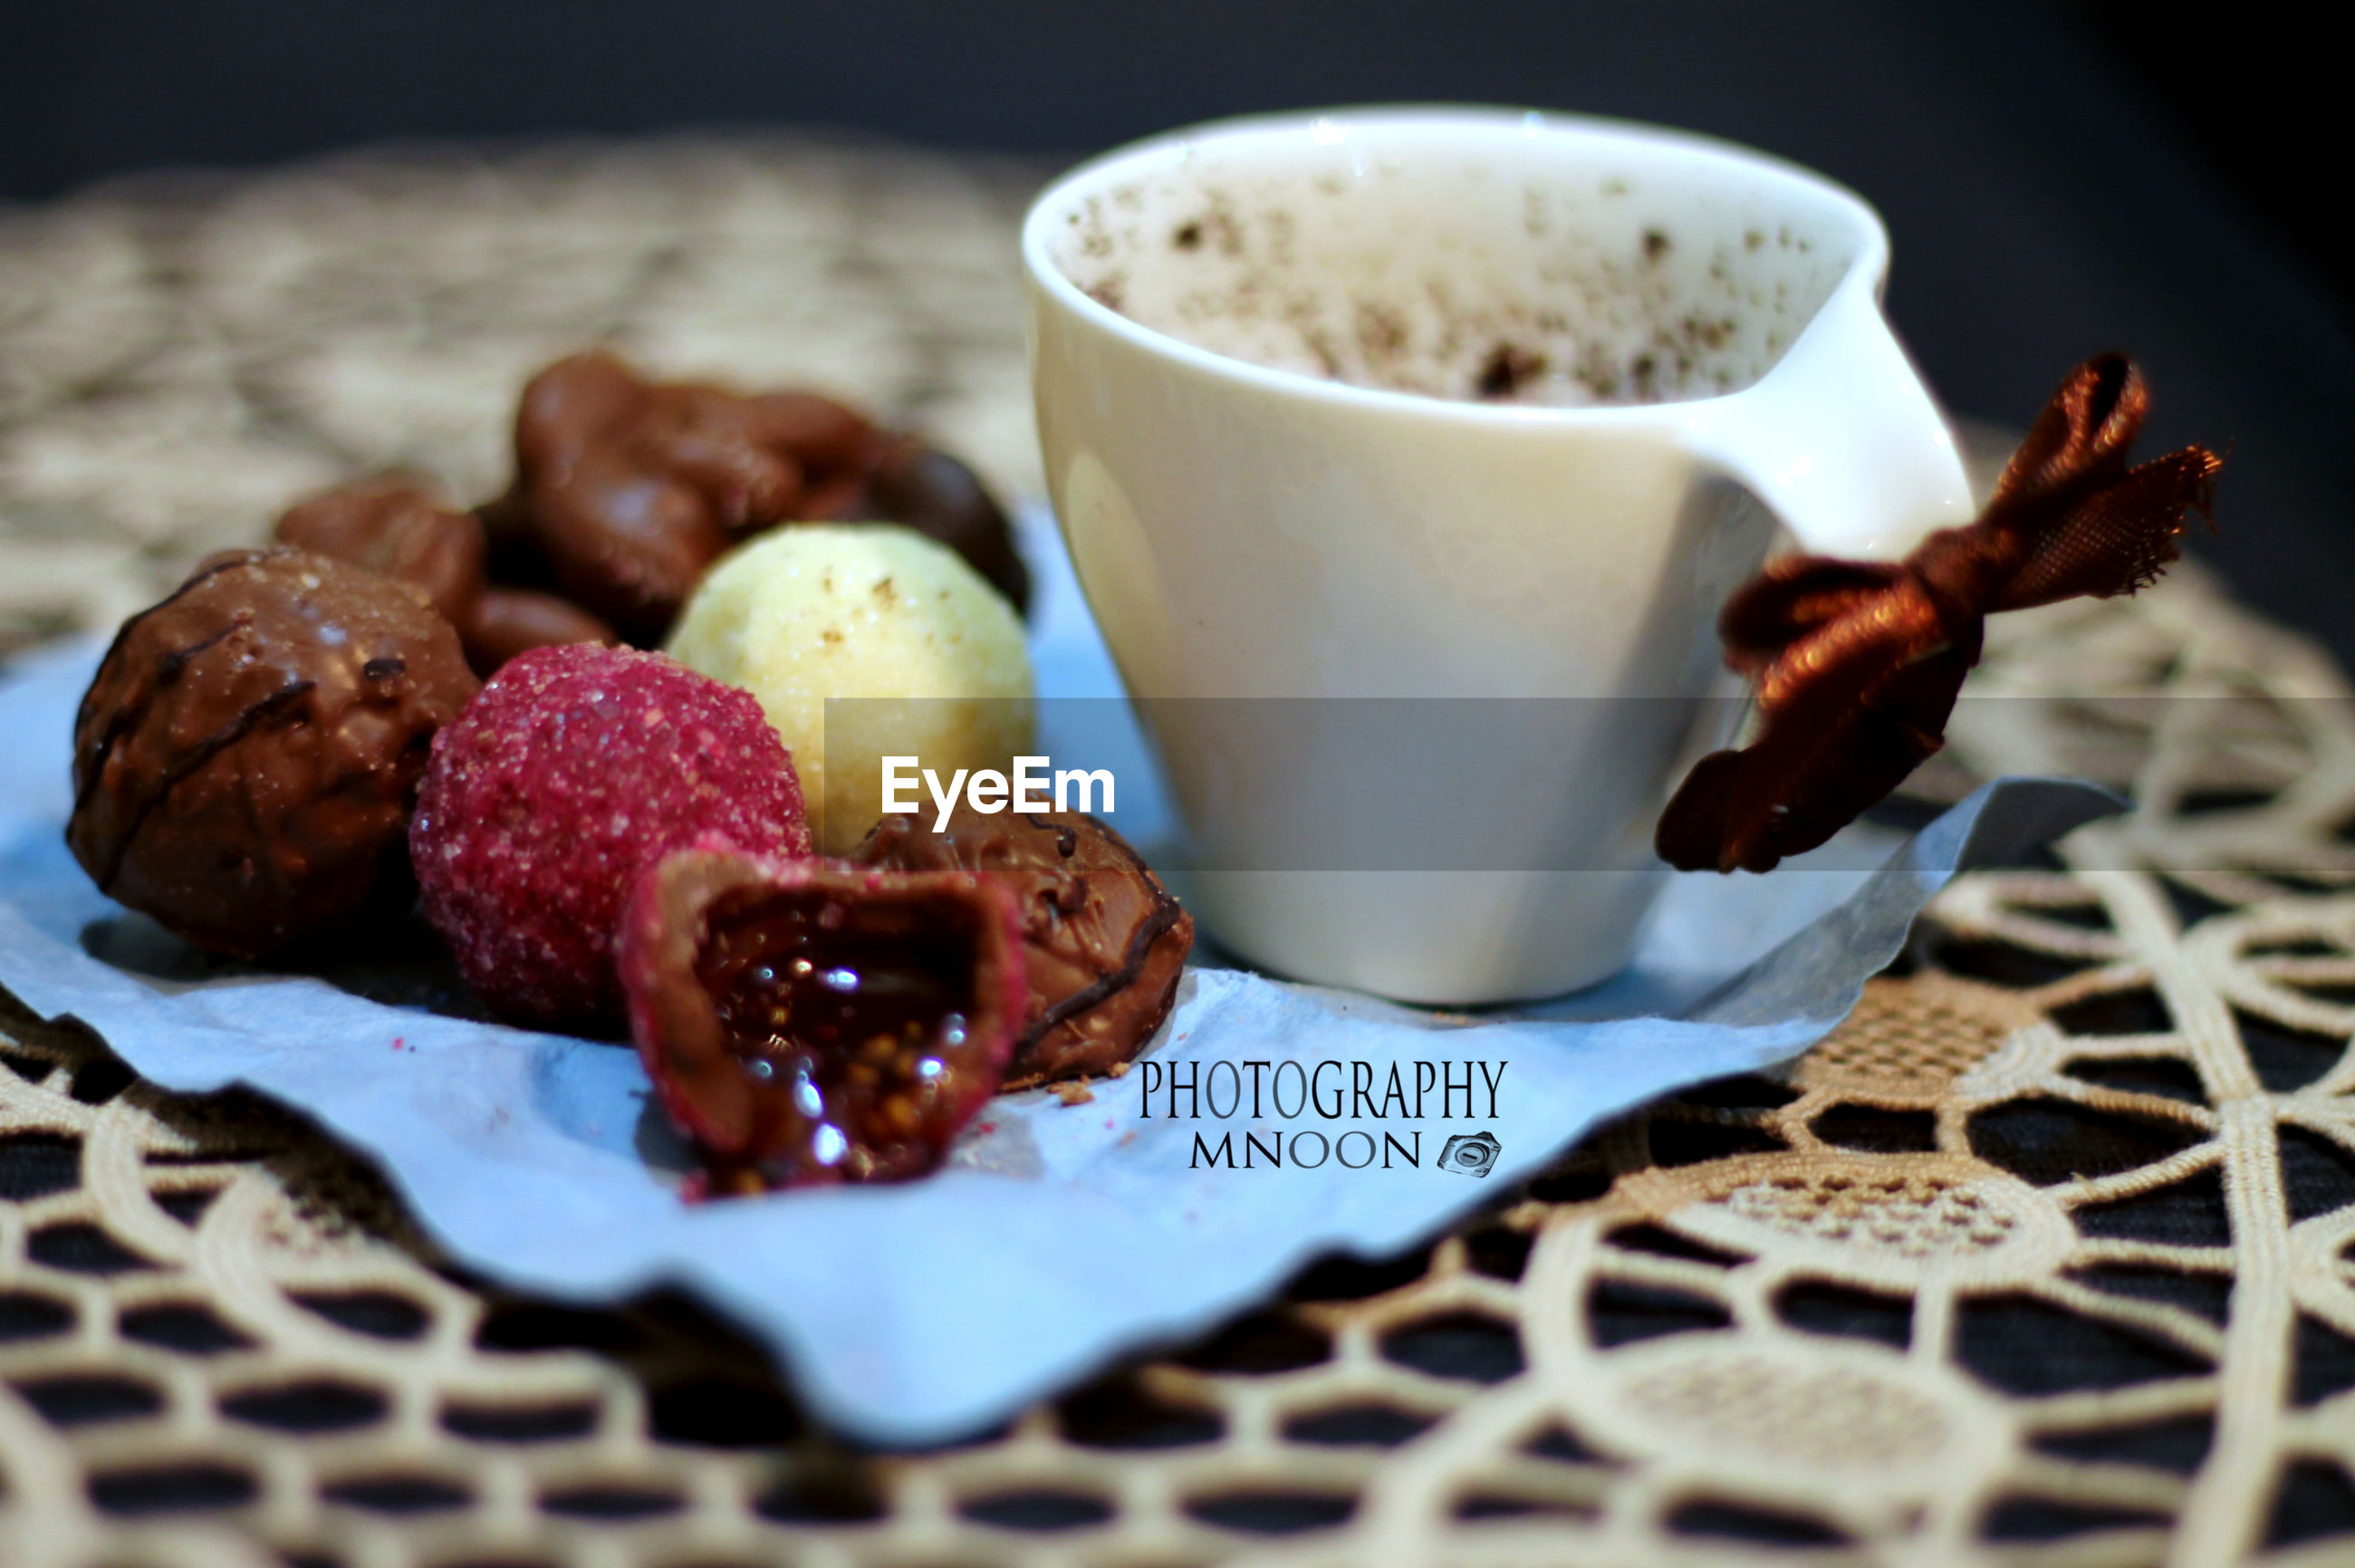 food and drink, food, indoors, freshness, sweet food, still life, ready-to-eat, dessert, indulgence, unhealthy eating, close-up, plate, cake, table, baked, temptation, selective focus, chocolate, cookie, high angle view